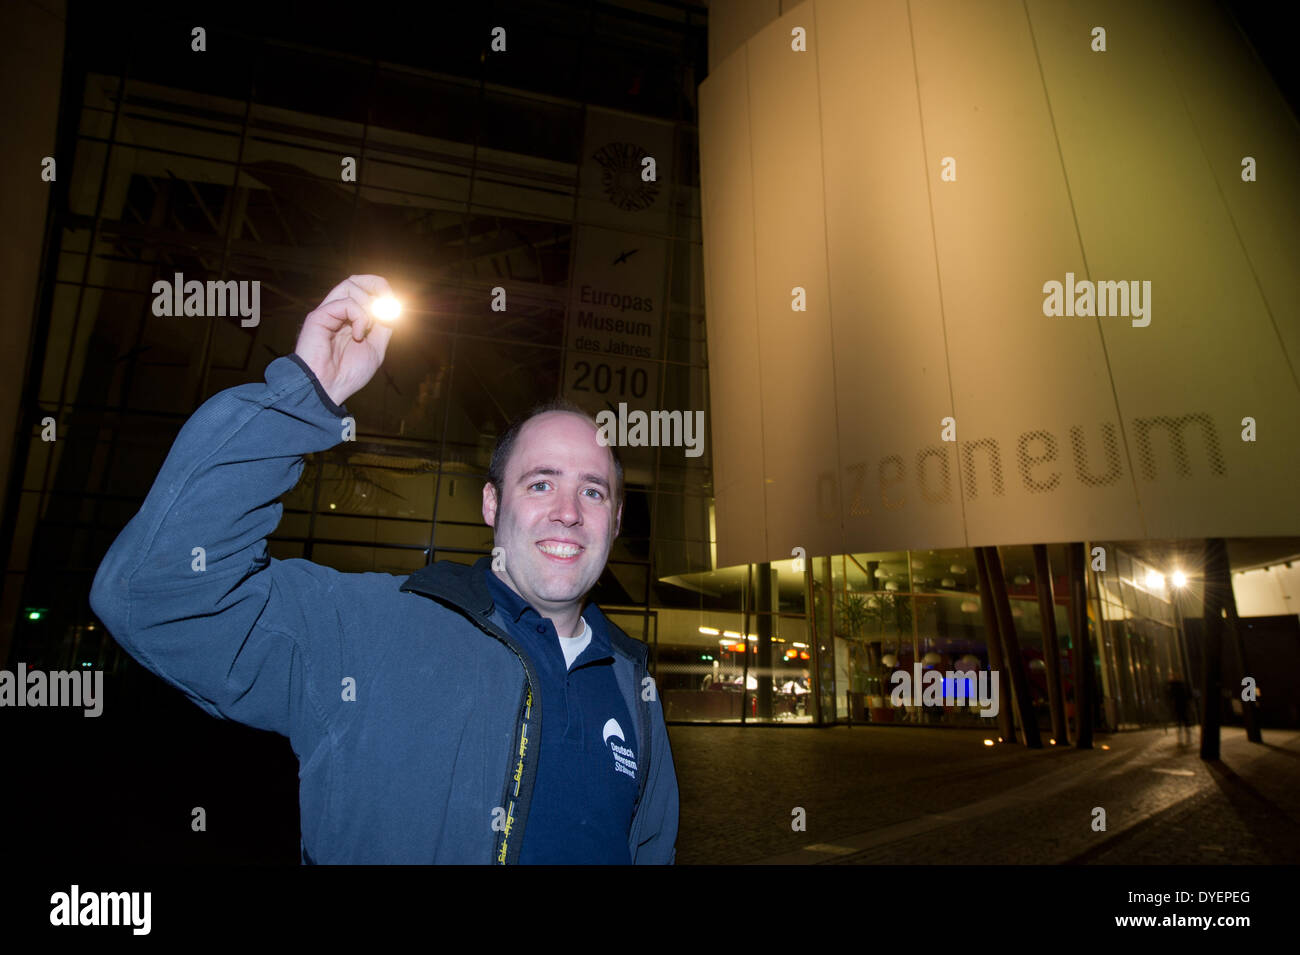 ILLUSTRATION - The director of the 'Ozeaneum' public aquarium, Alexander von den Dreisch, shines with his pocket lamp as he stands in front of the entrance area to the qauarium in Stralsund, germany, 10 March 2014. Photo: Stefan Sauer - Stock Image